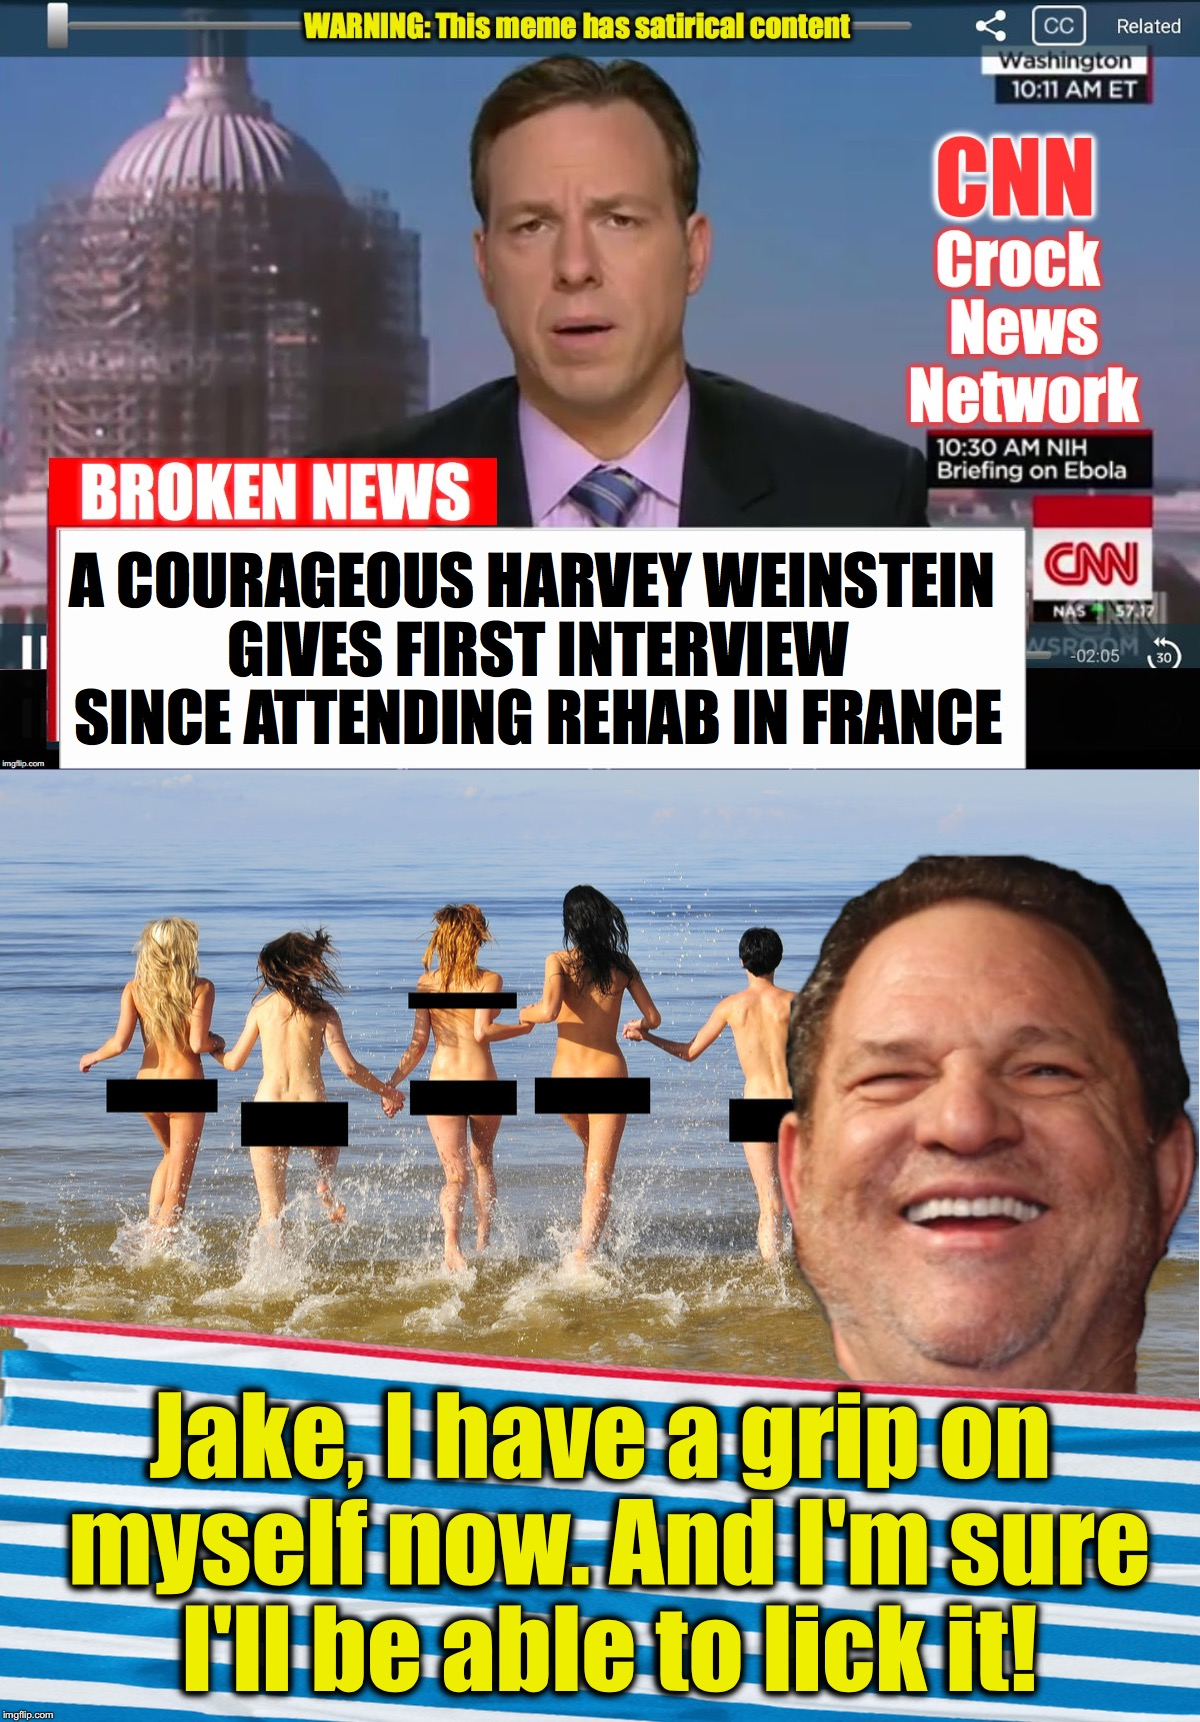 A COURAGEOUS HARVEY WEINSTEIN GIVES FIRST INTERVIEW SINCE ATTENDING REHAB IN FRANCE Jake, I have a grip on myself now. And I'm sure I'll be  | image tagged in harvey weinstein,cnn crock news network | made w/ Imgflip meme maker